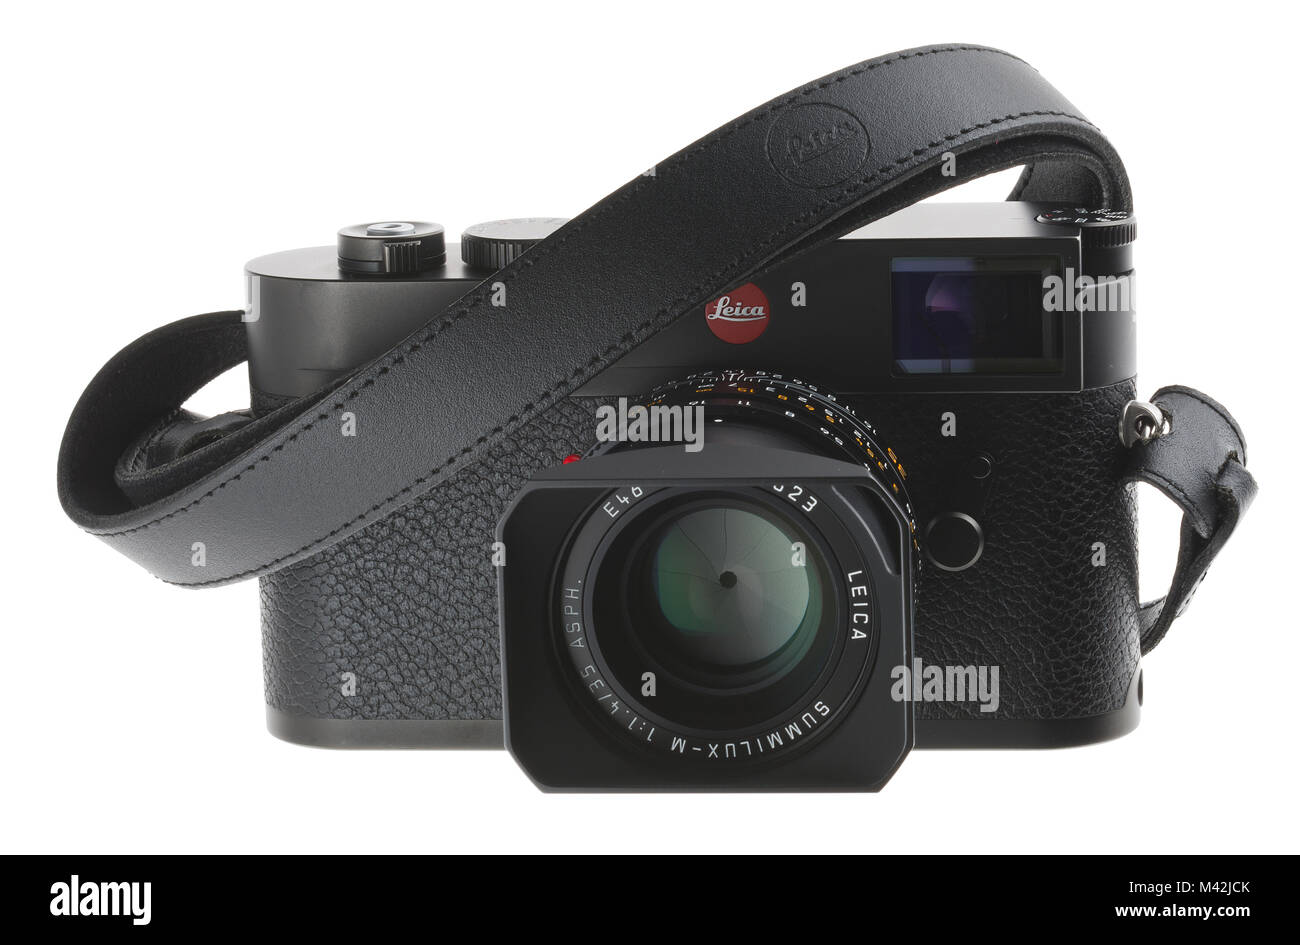 Leica M10 camera - Stock Image